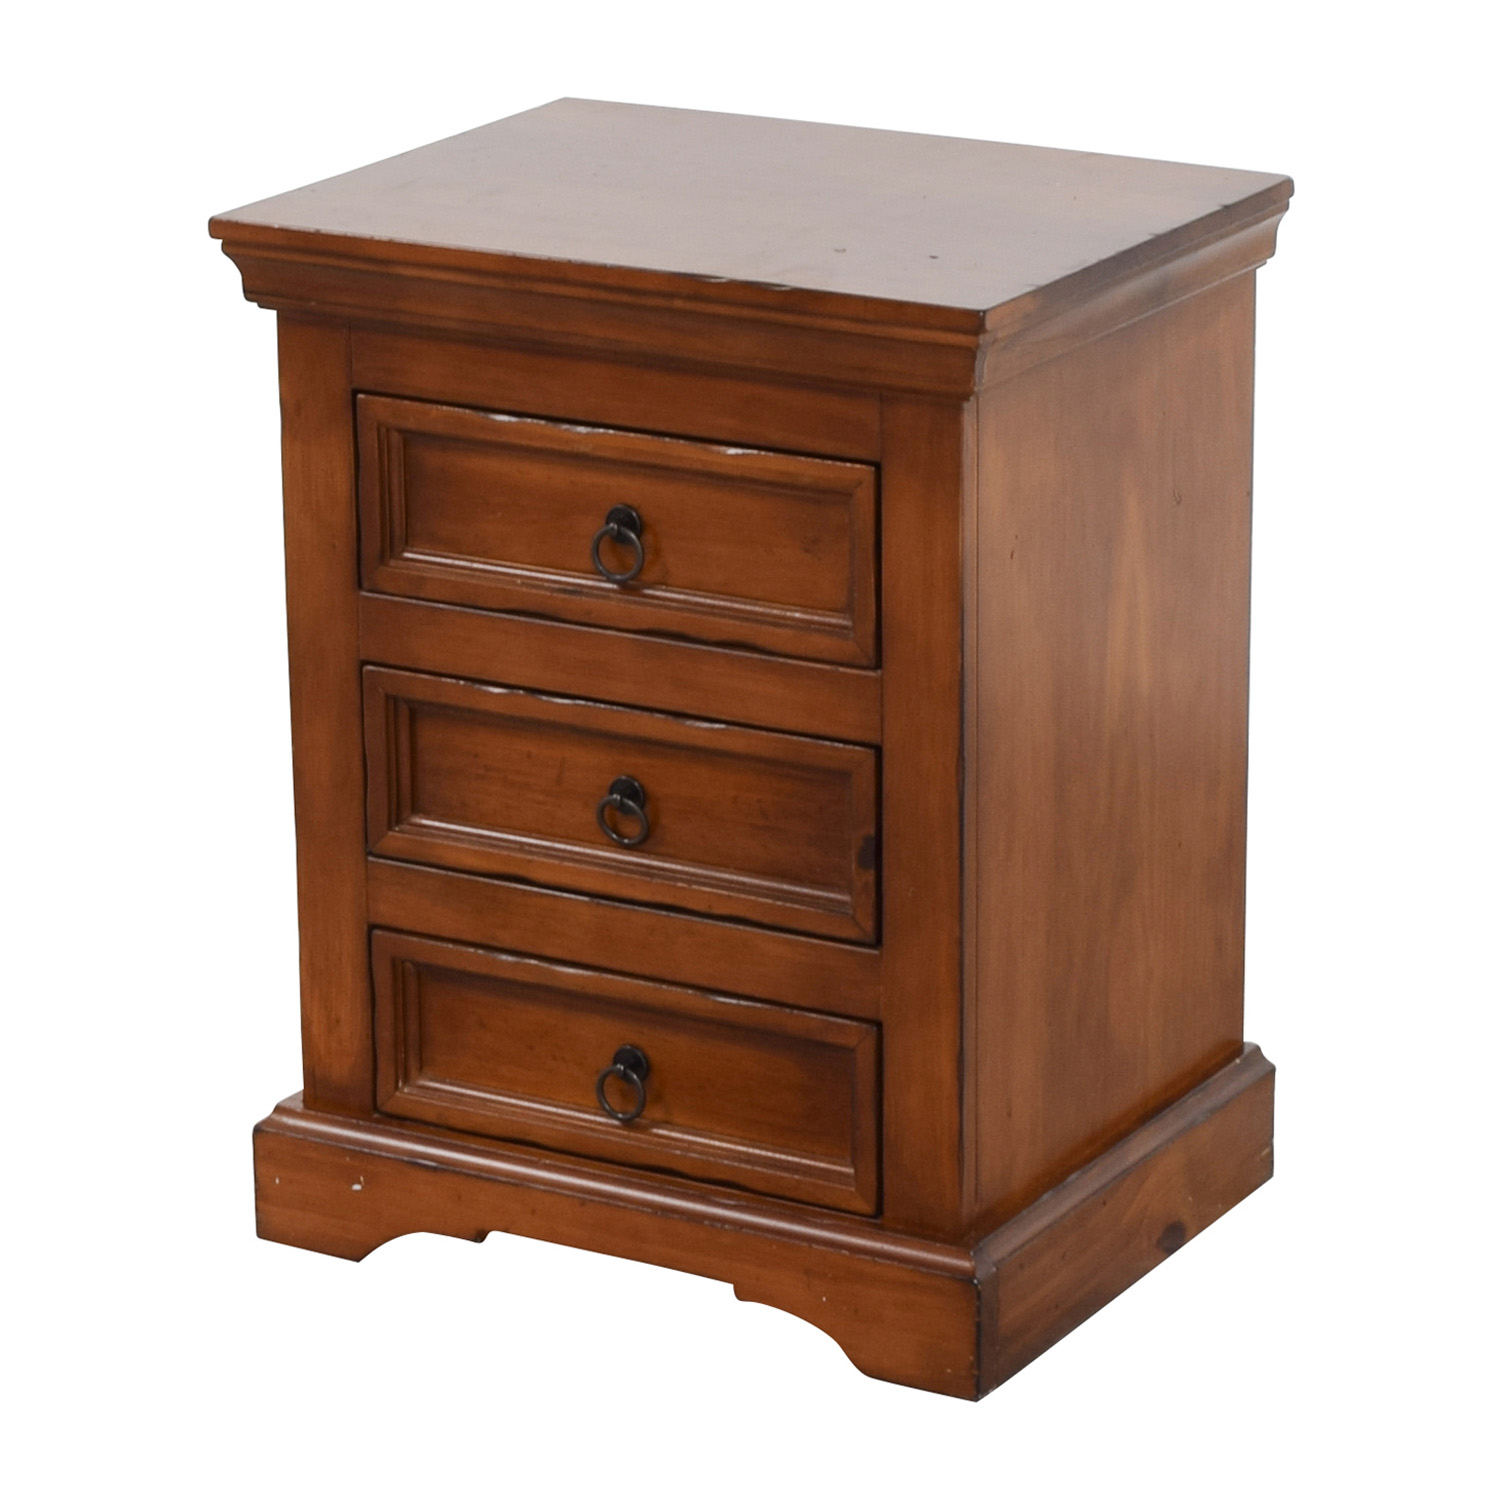 Pier 1 Imports Three-Drawer Nightstand / Tables